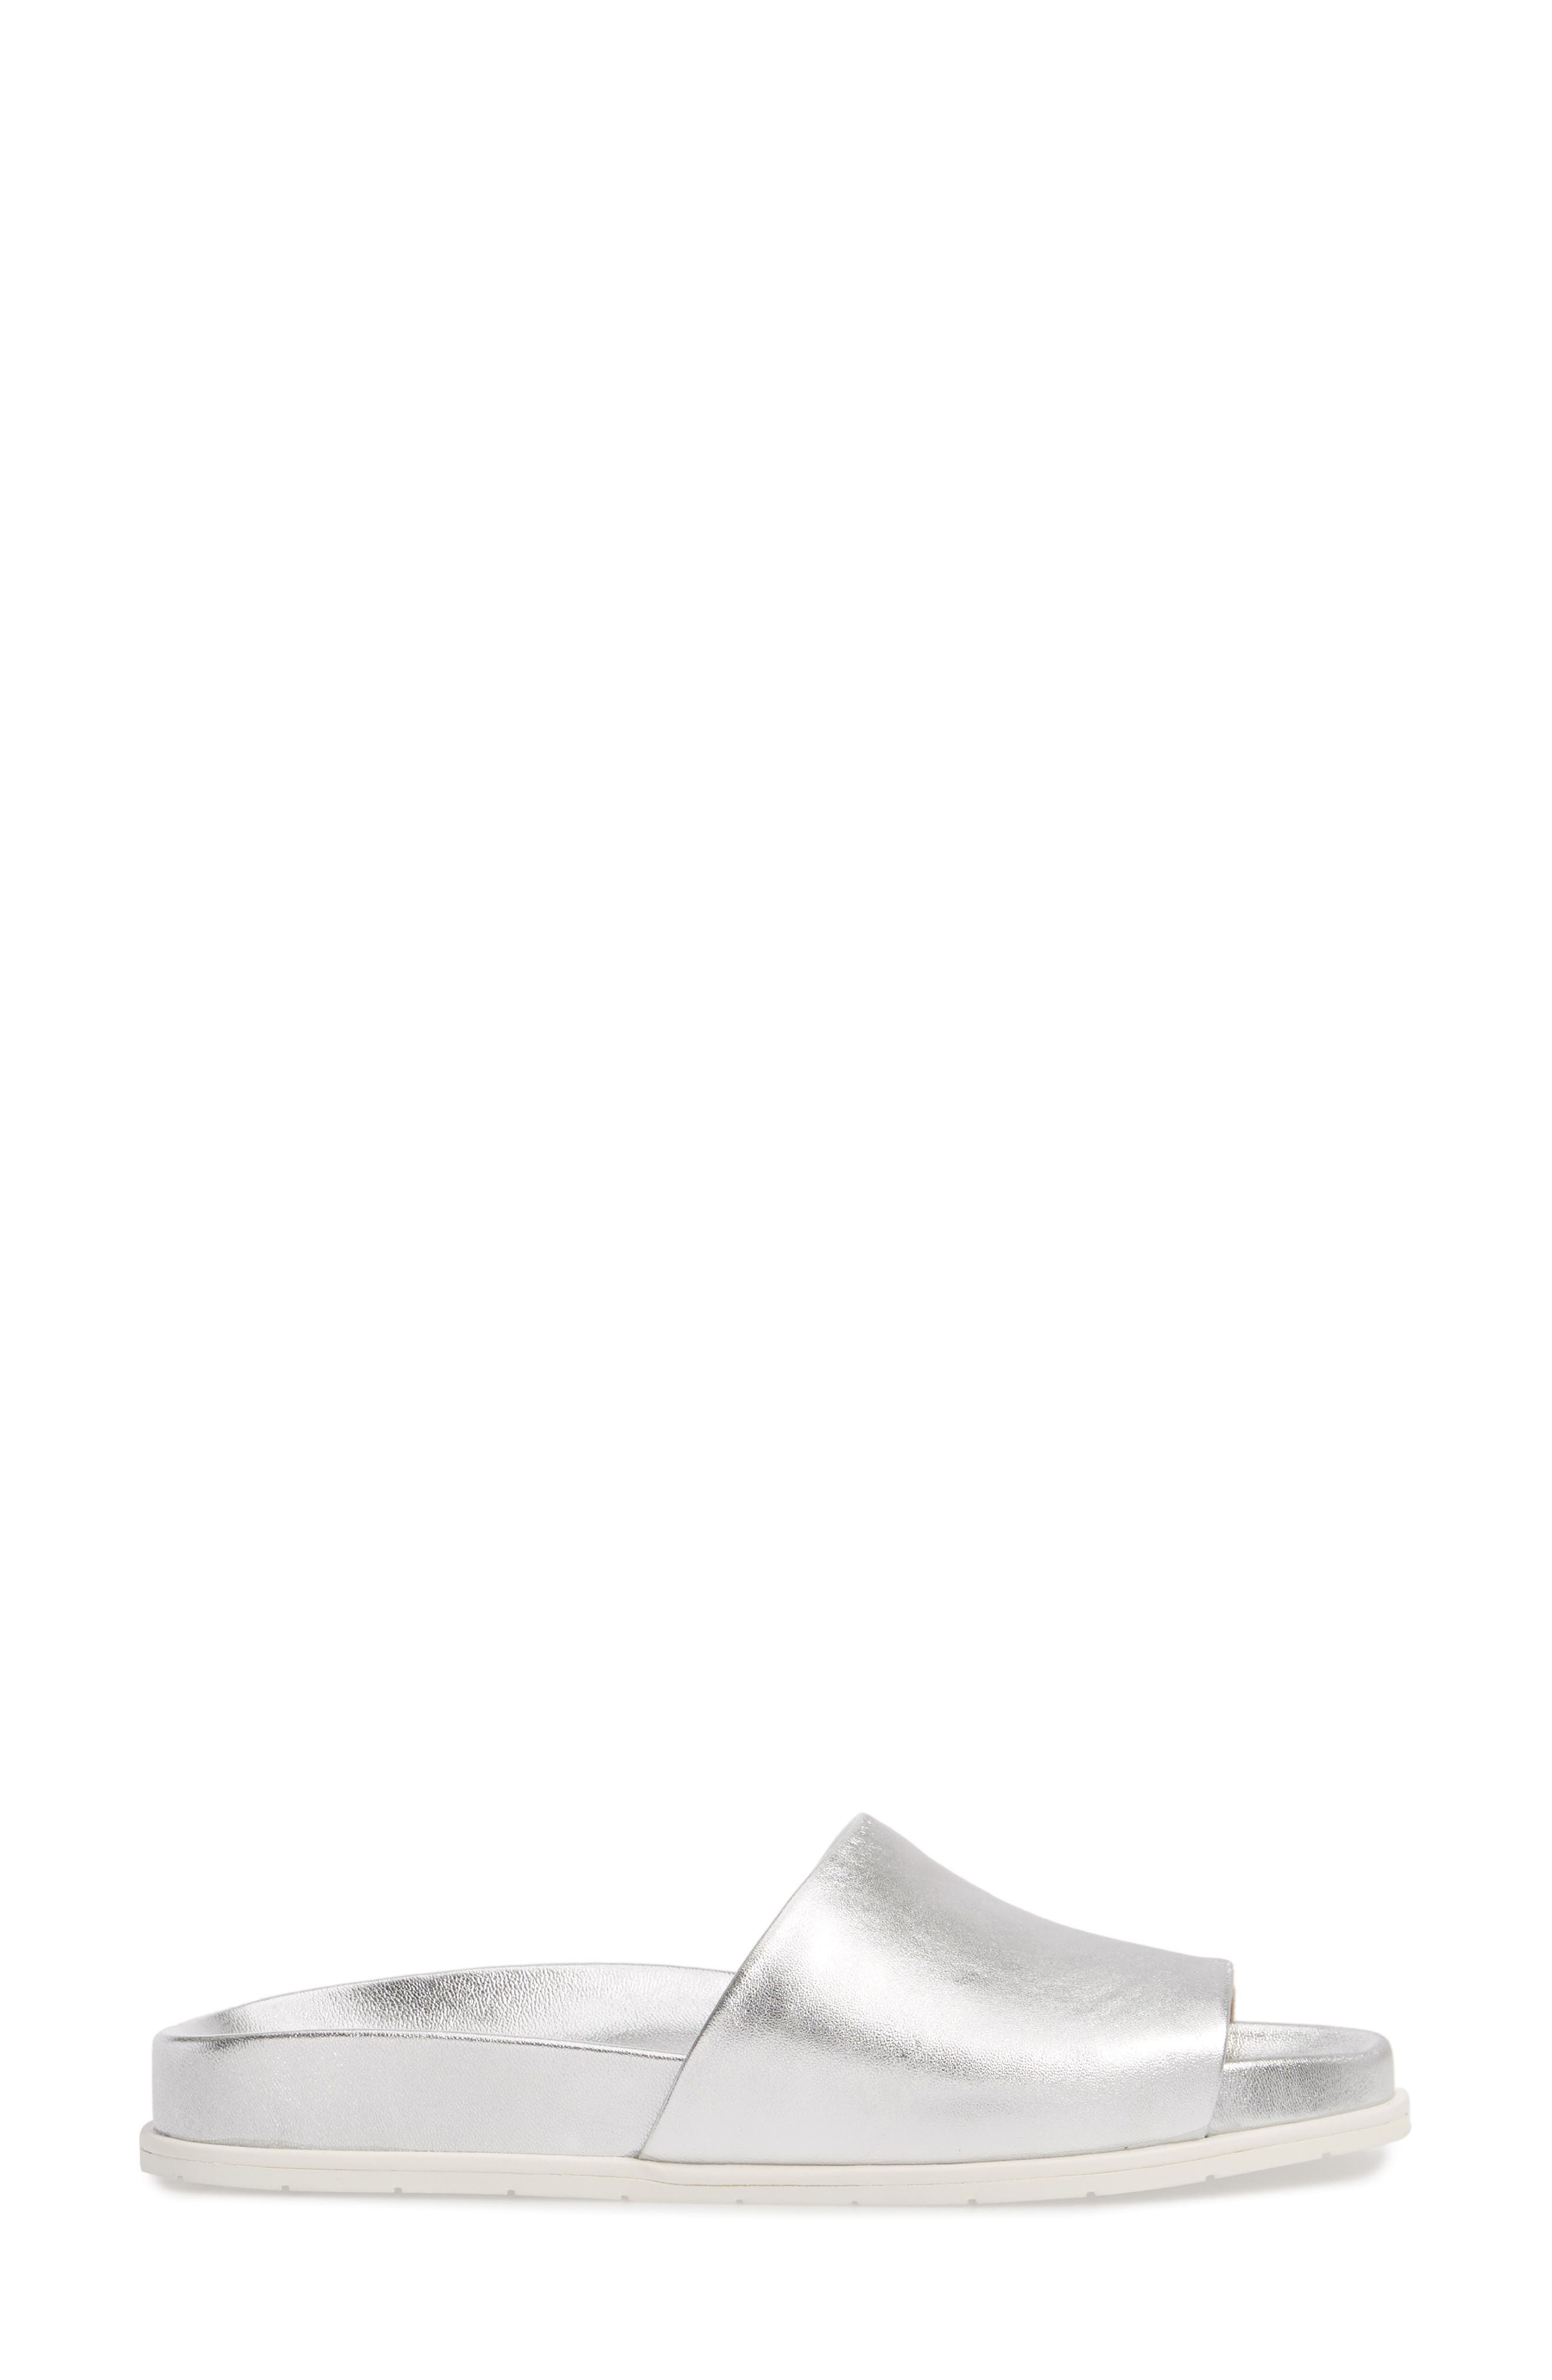 GENTLE SOULS BY KENNETH COLE, Iona Slide Sandal, Alternate thumbnail 3, color, SILVER METALLIC LEATHER